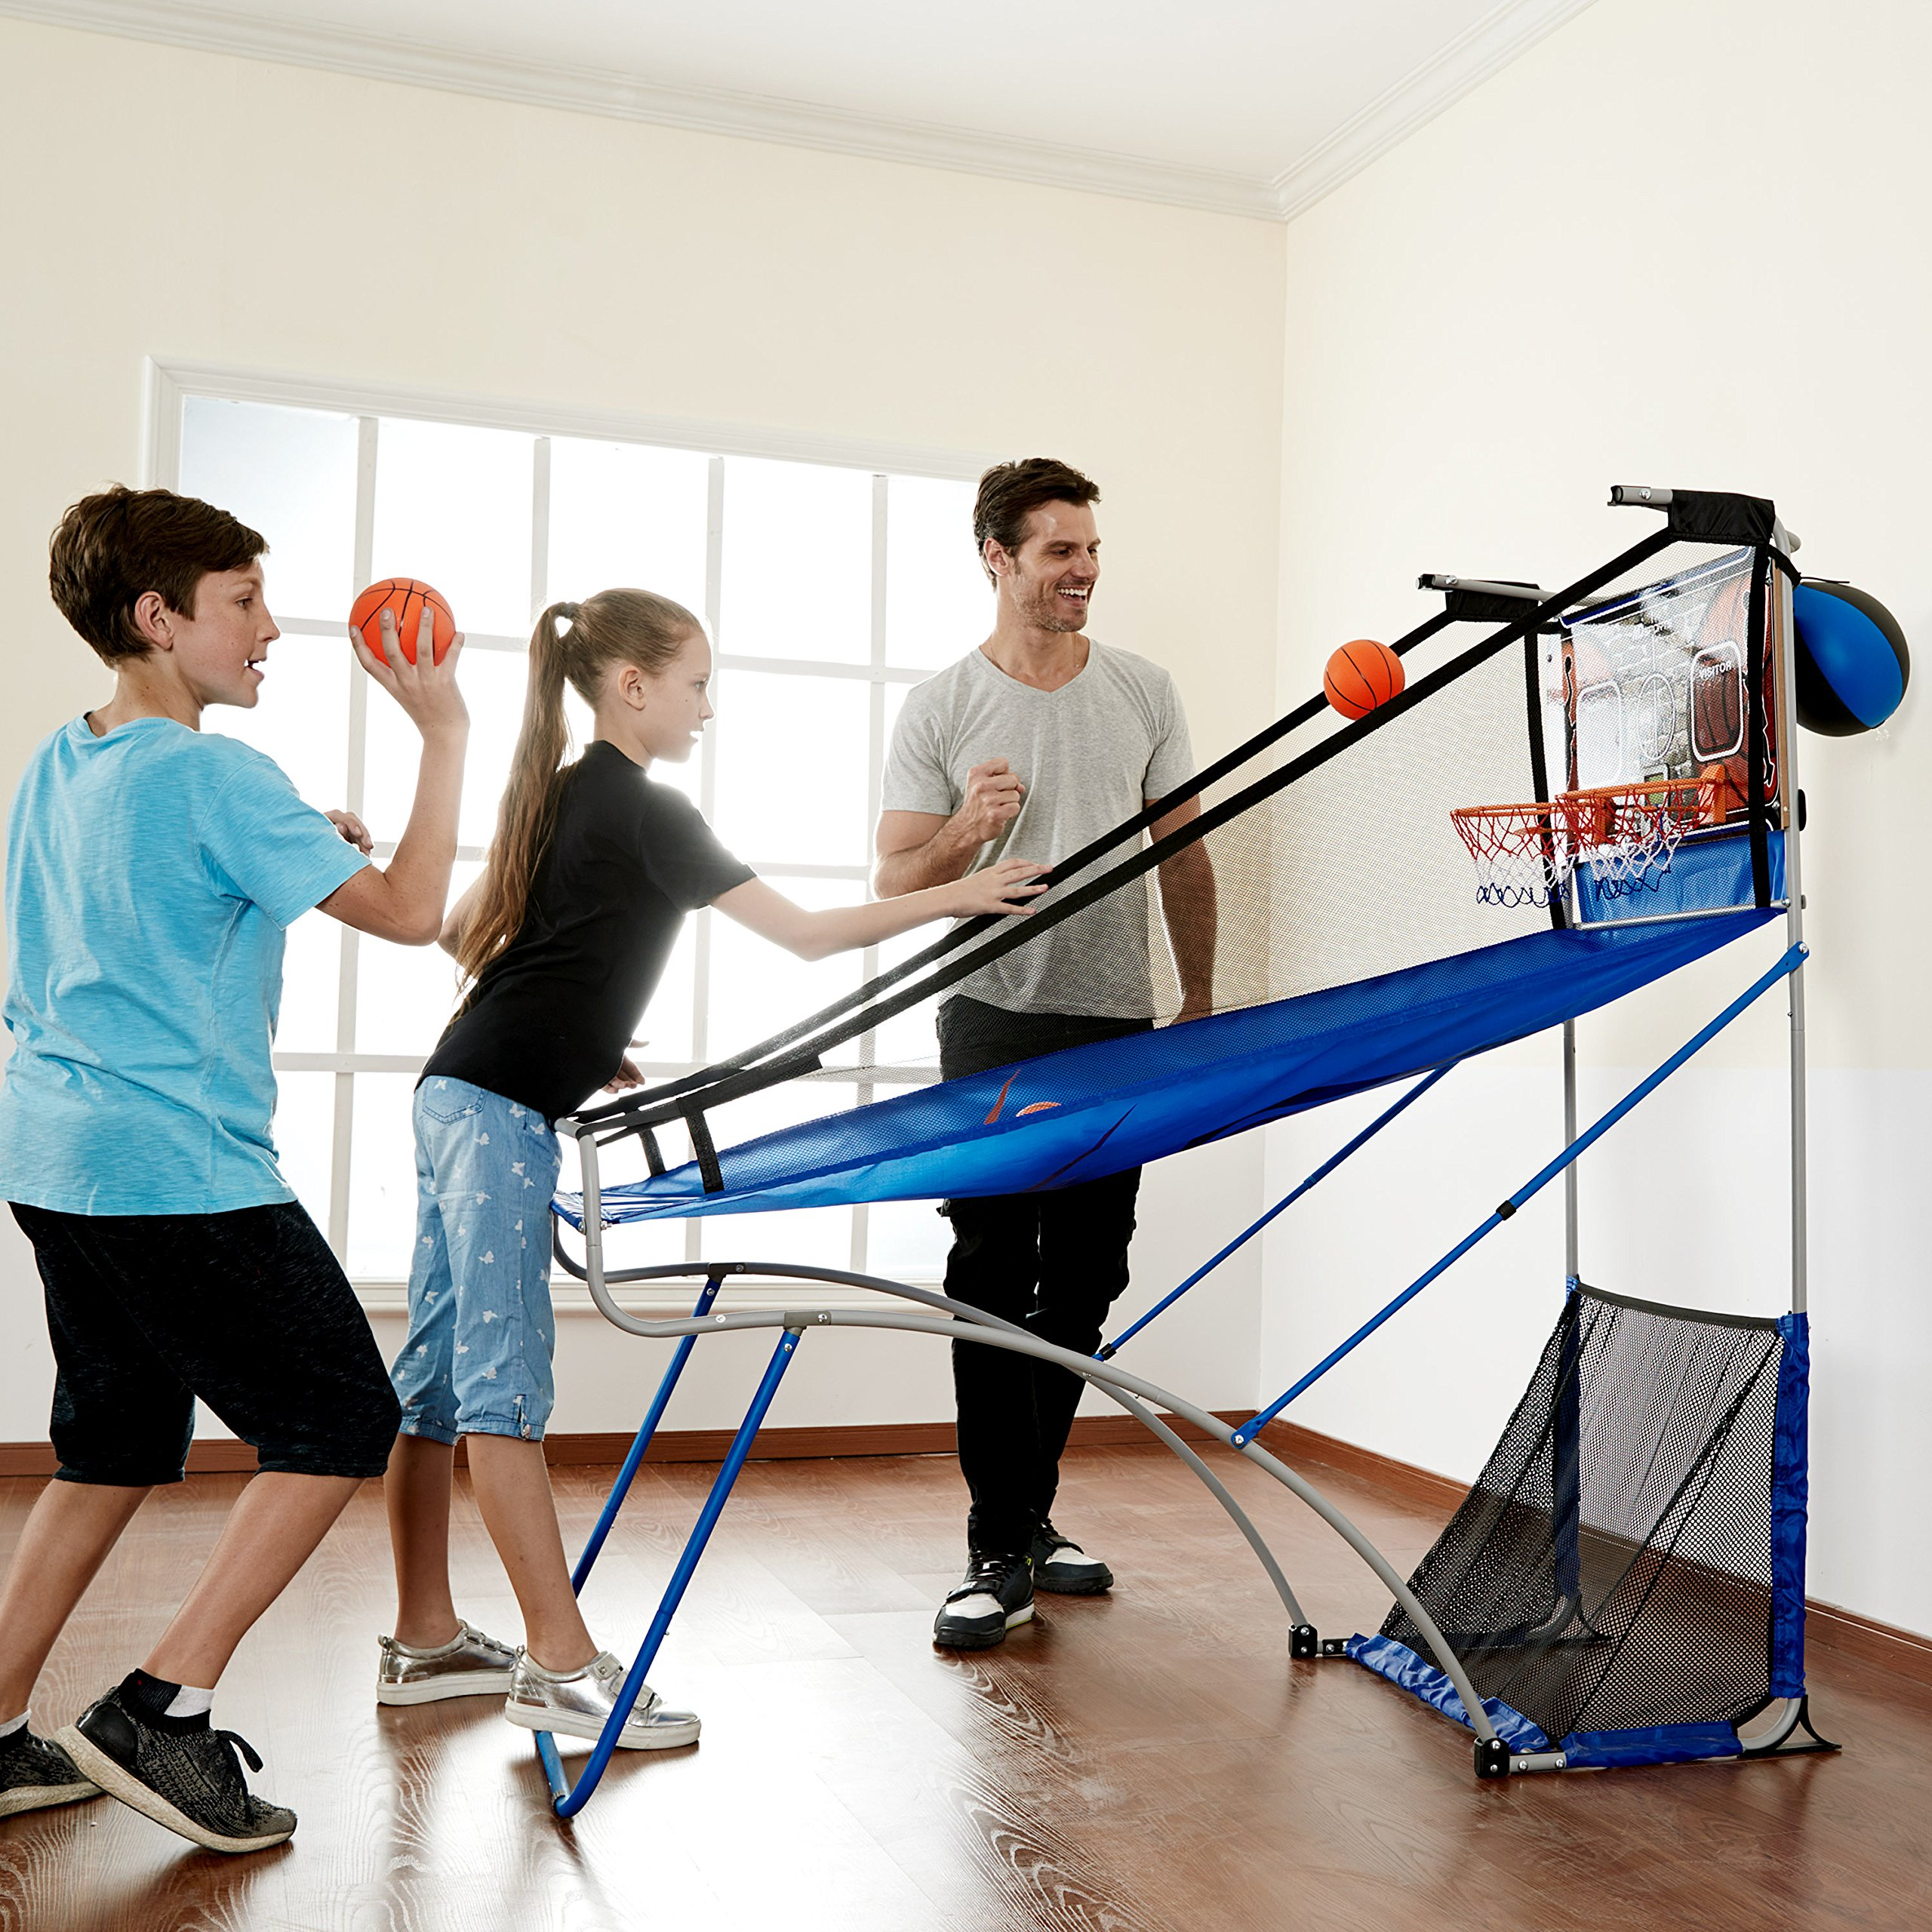 MD Sports BBG019_067M 4 in 1 Junior Basketball Game (Basketball, Soccer, Boxing & KNEE Hockey), Blue by MD Sports (Image #3)